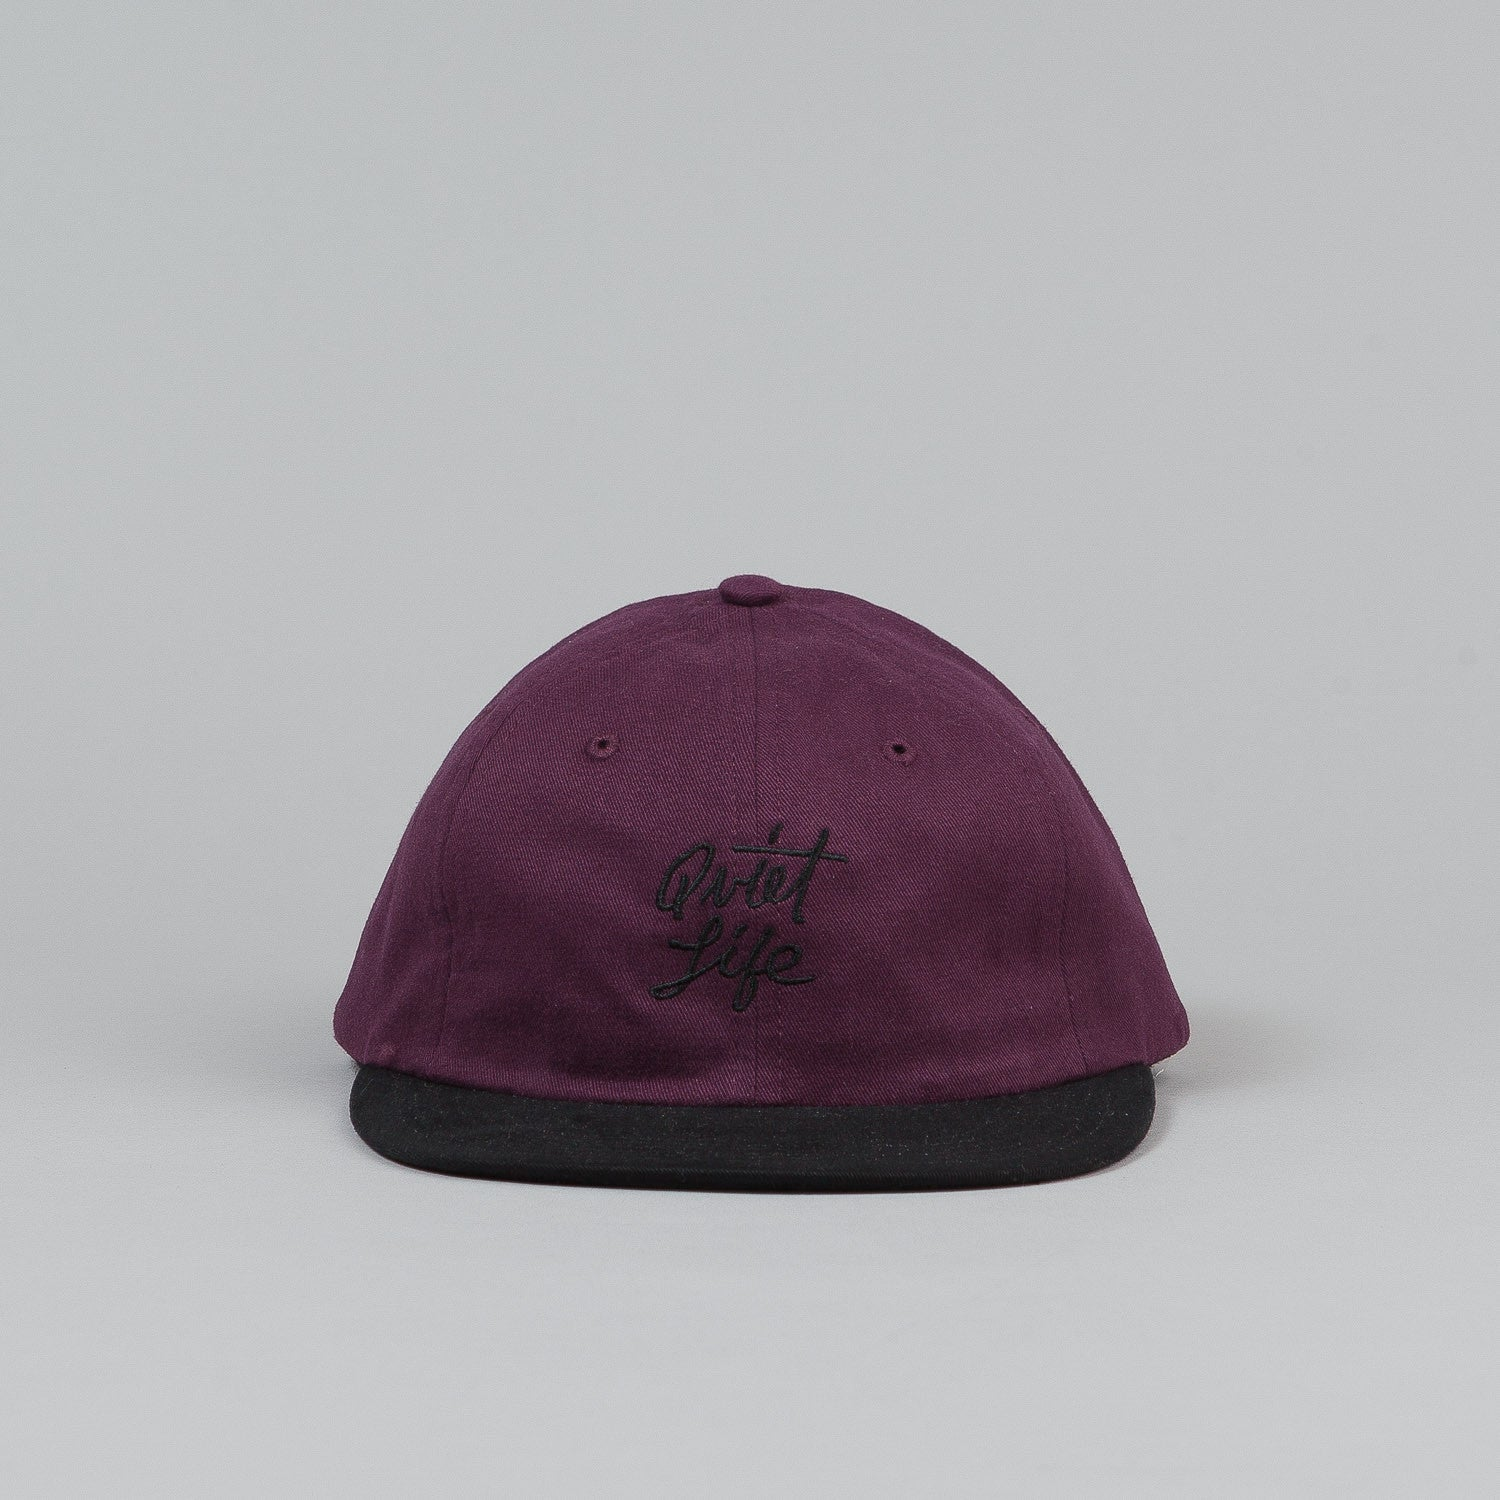 The Quiet Life Hudson Polo Cap - Maroon Crown